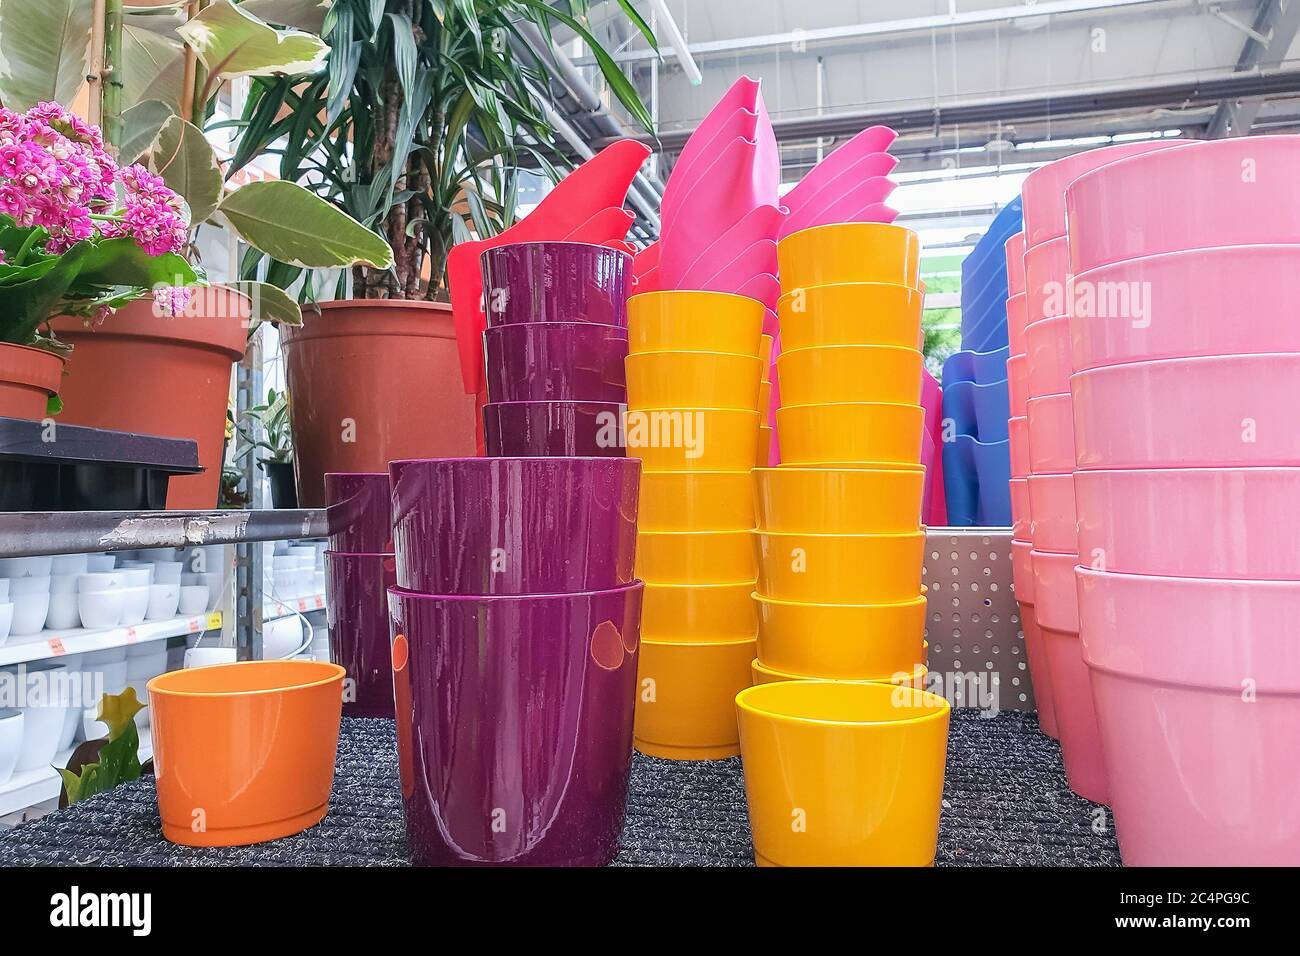 Variety Of Colorful Flower Pots In A Plant Store Stock Photo Alamy